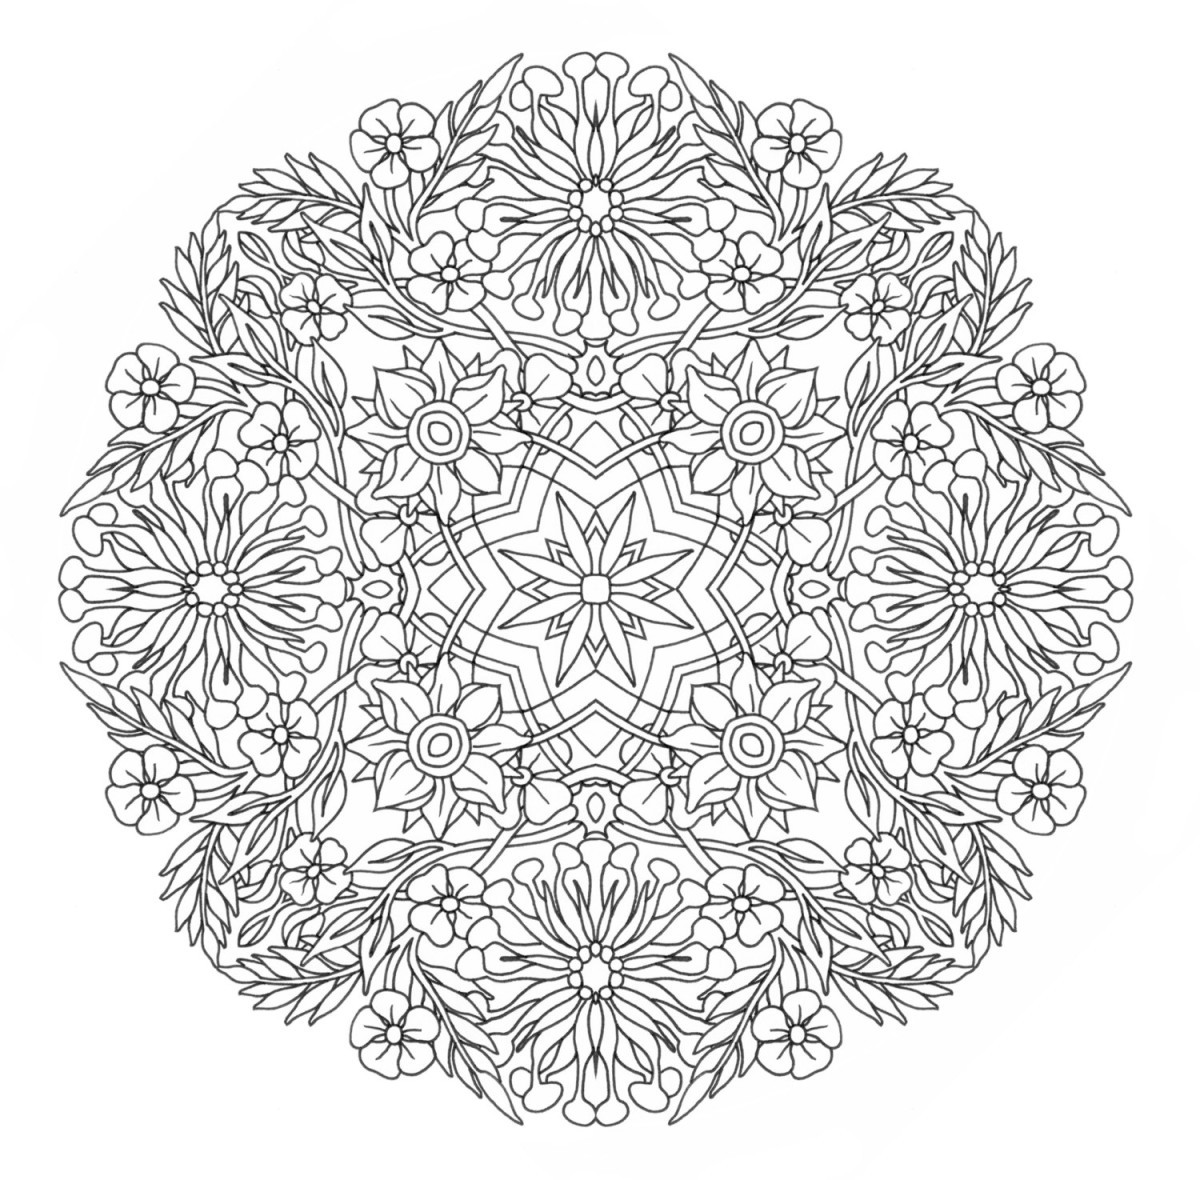 Free Printable Mandala Coloring Pages For Adults  47 Awesome Free line Coloring Pages for Adults